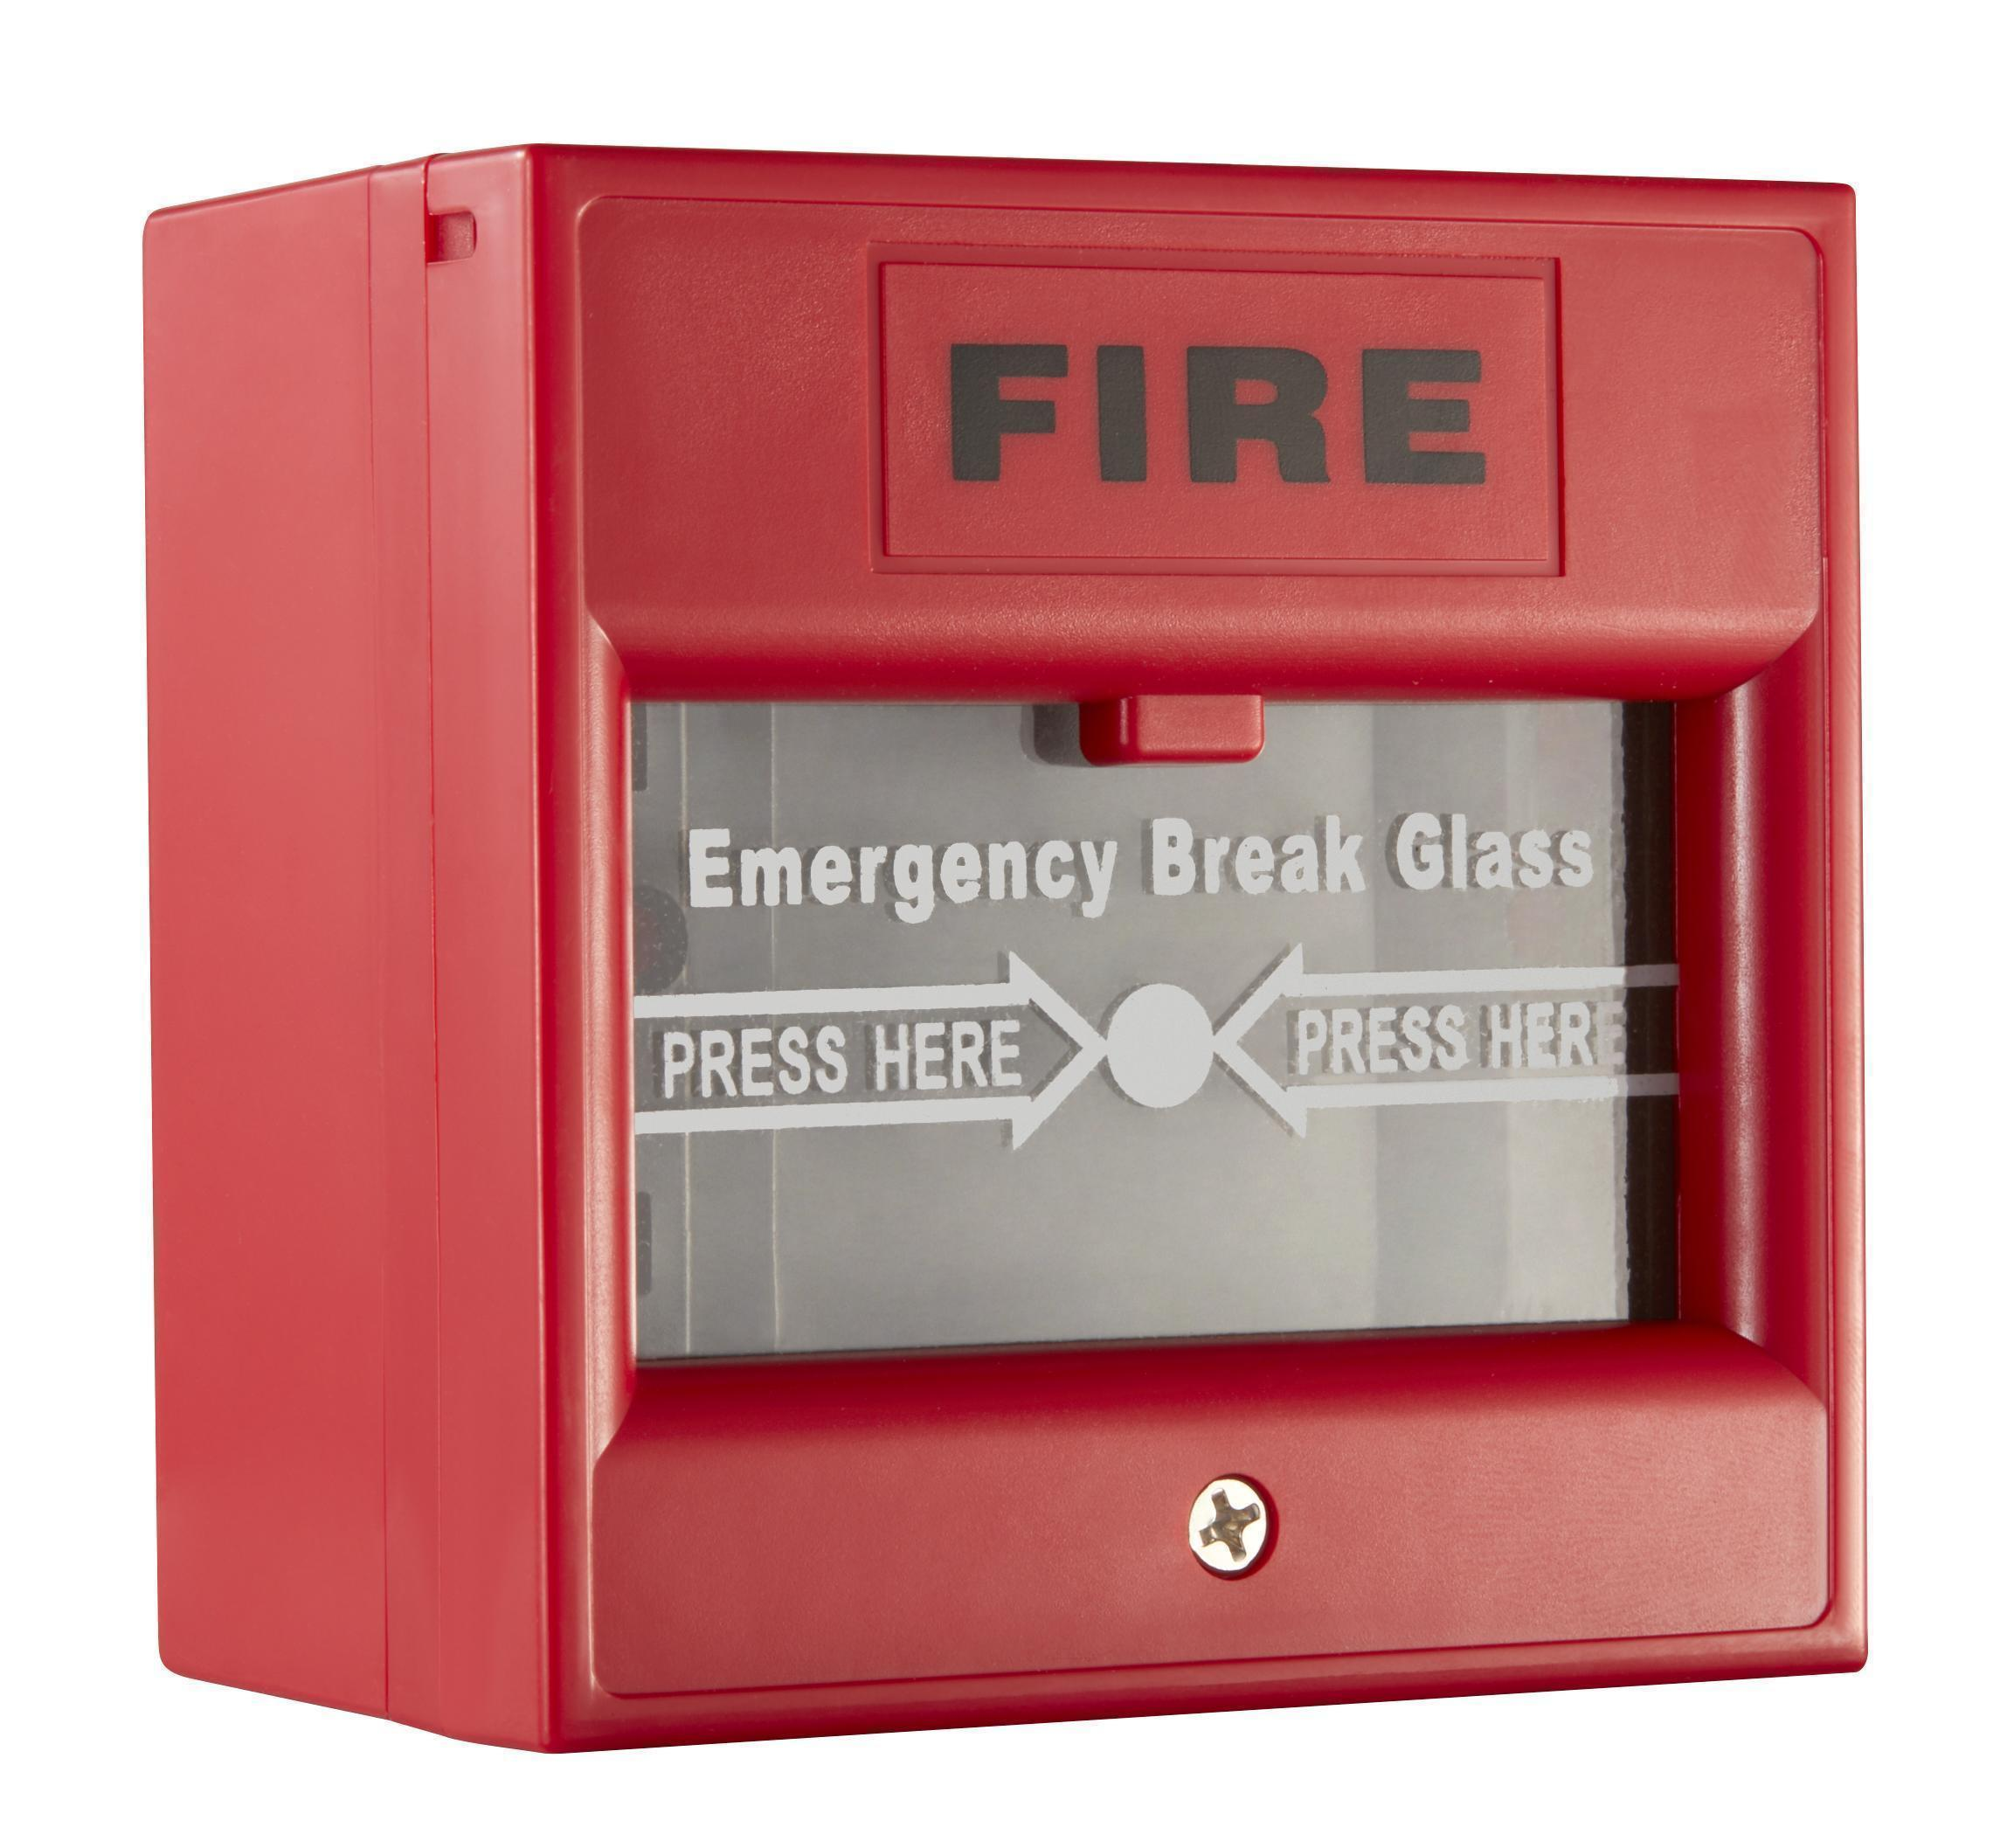 Hikvision DS-K7PEB Emergency Break Glass